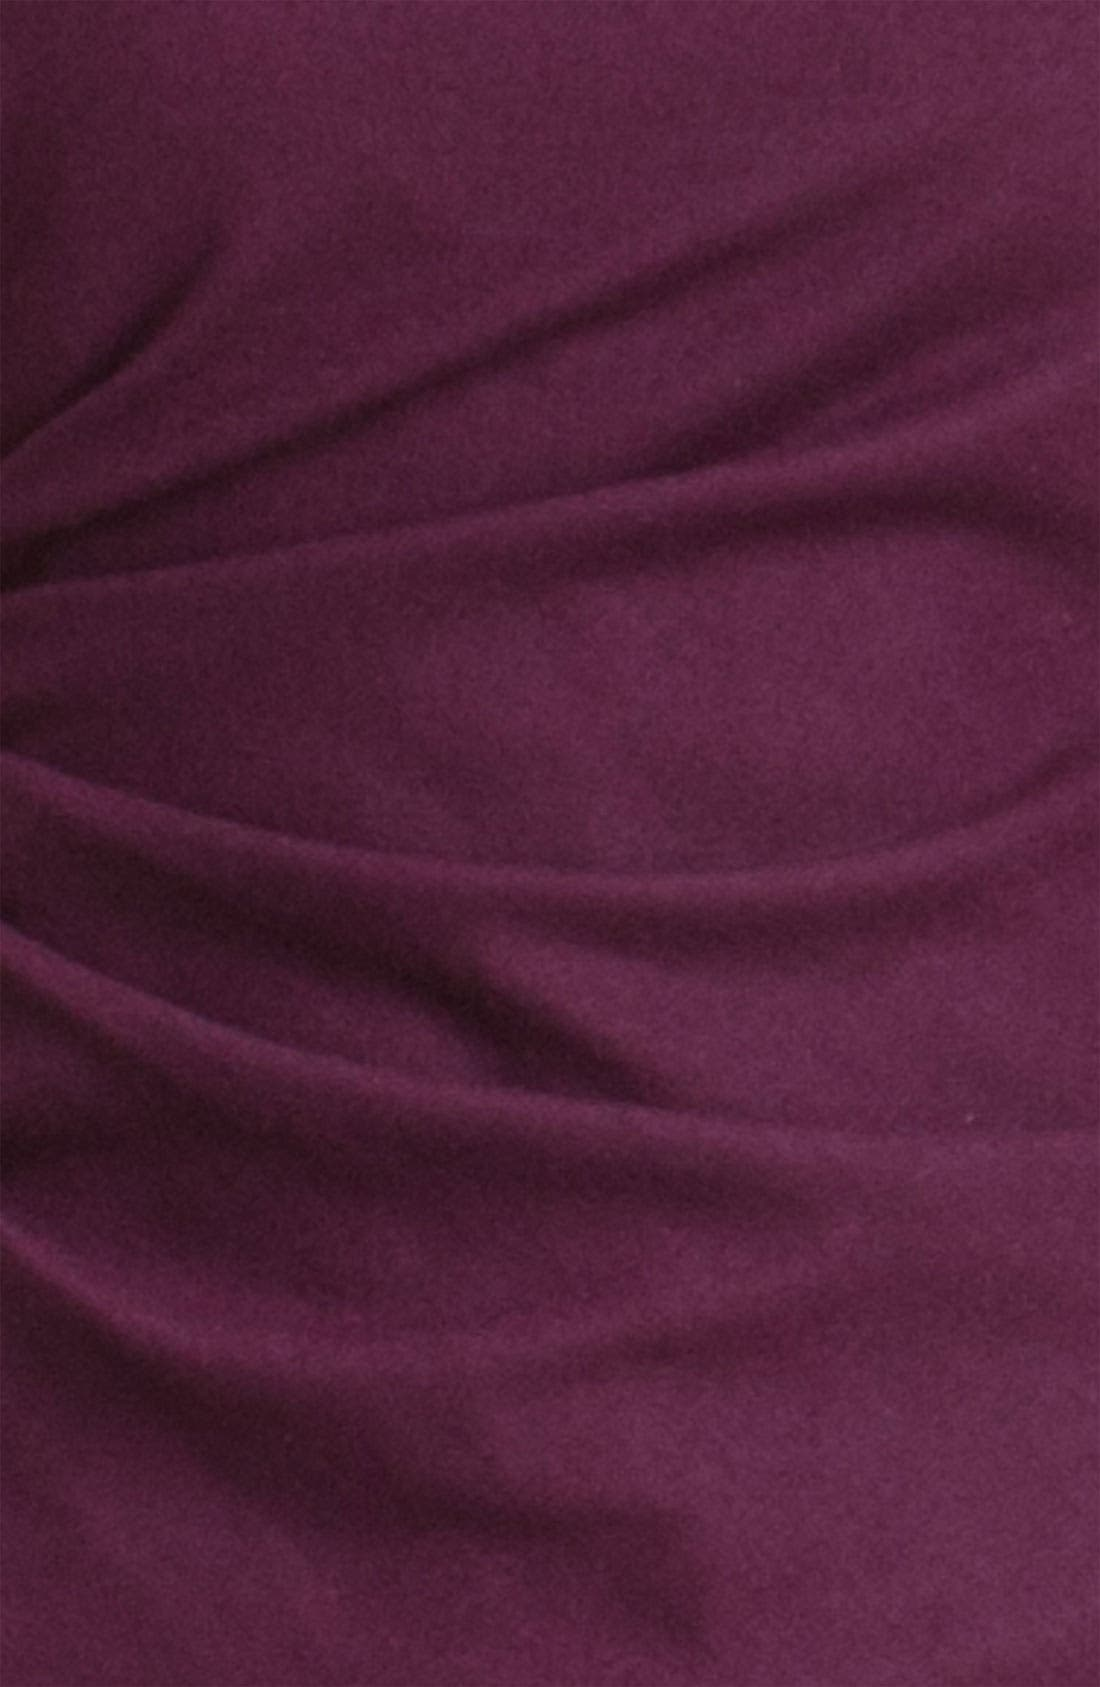 'Meily K. - Victorious' Wool Shift Dress,                             Alternate thumbnail 3, color,                             Syrah